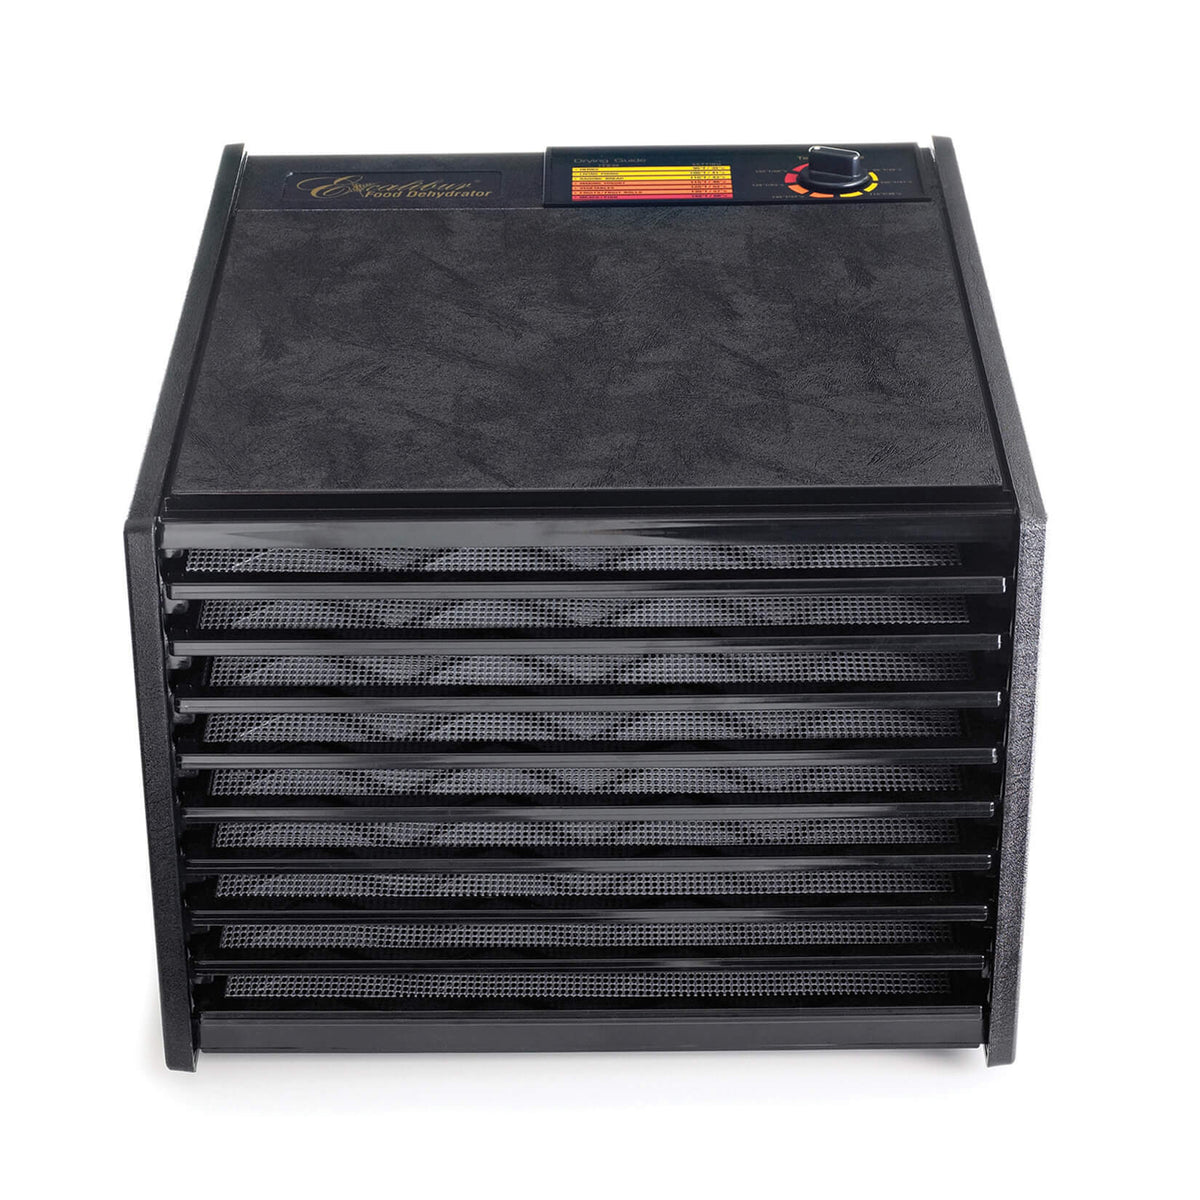 Excalibur 4900B 9 tray dehydrator front view with trays in.